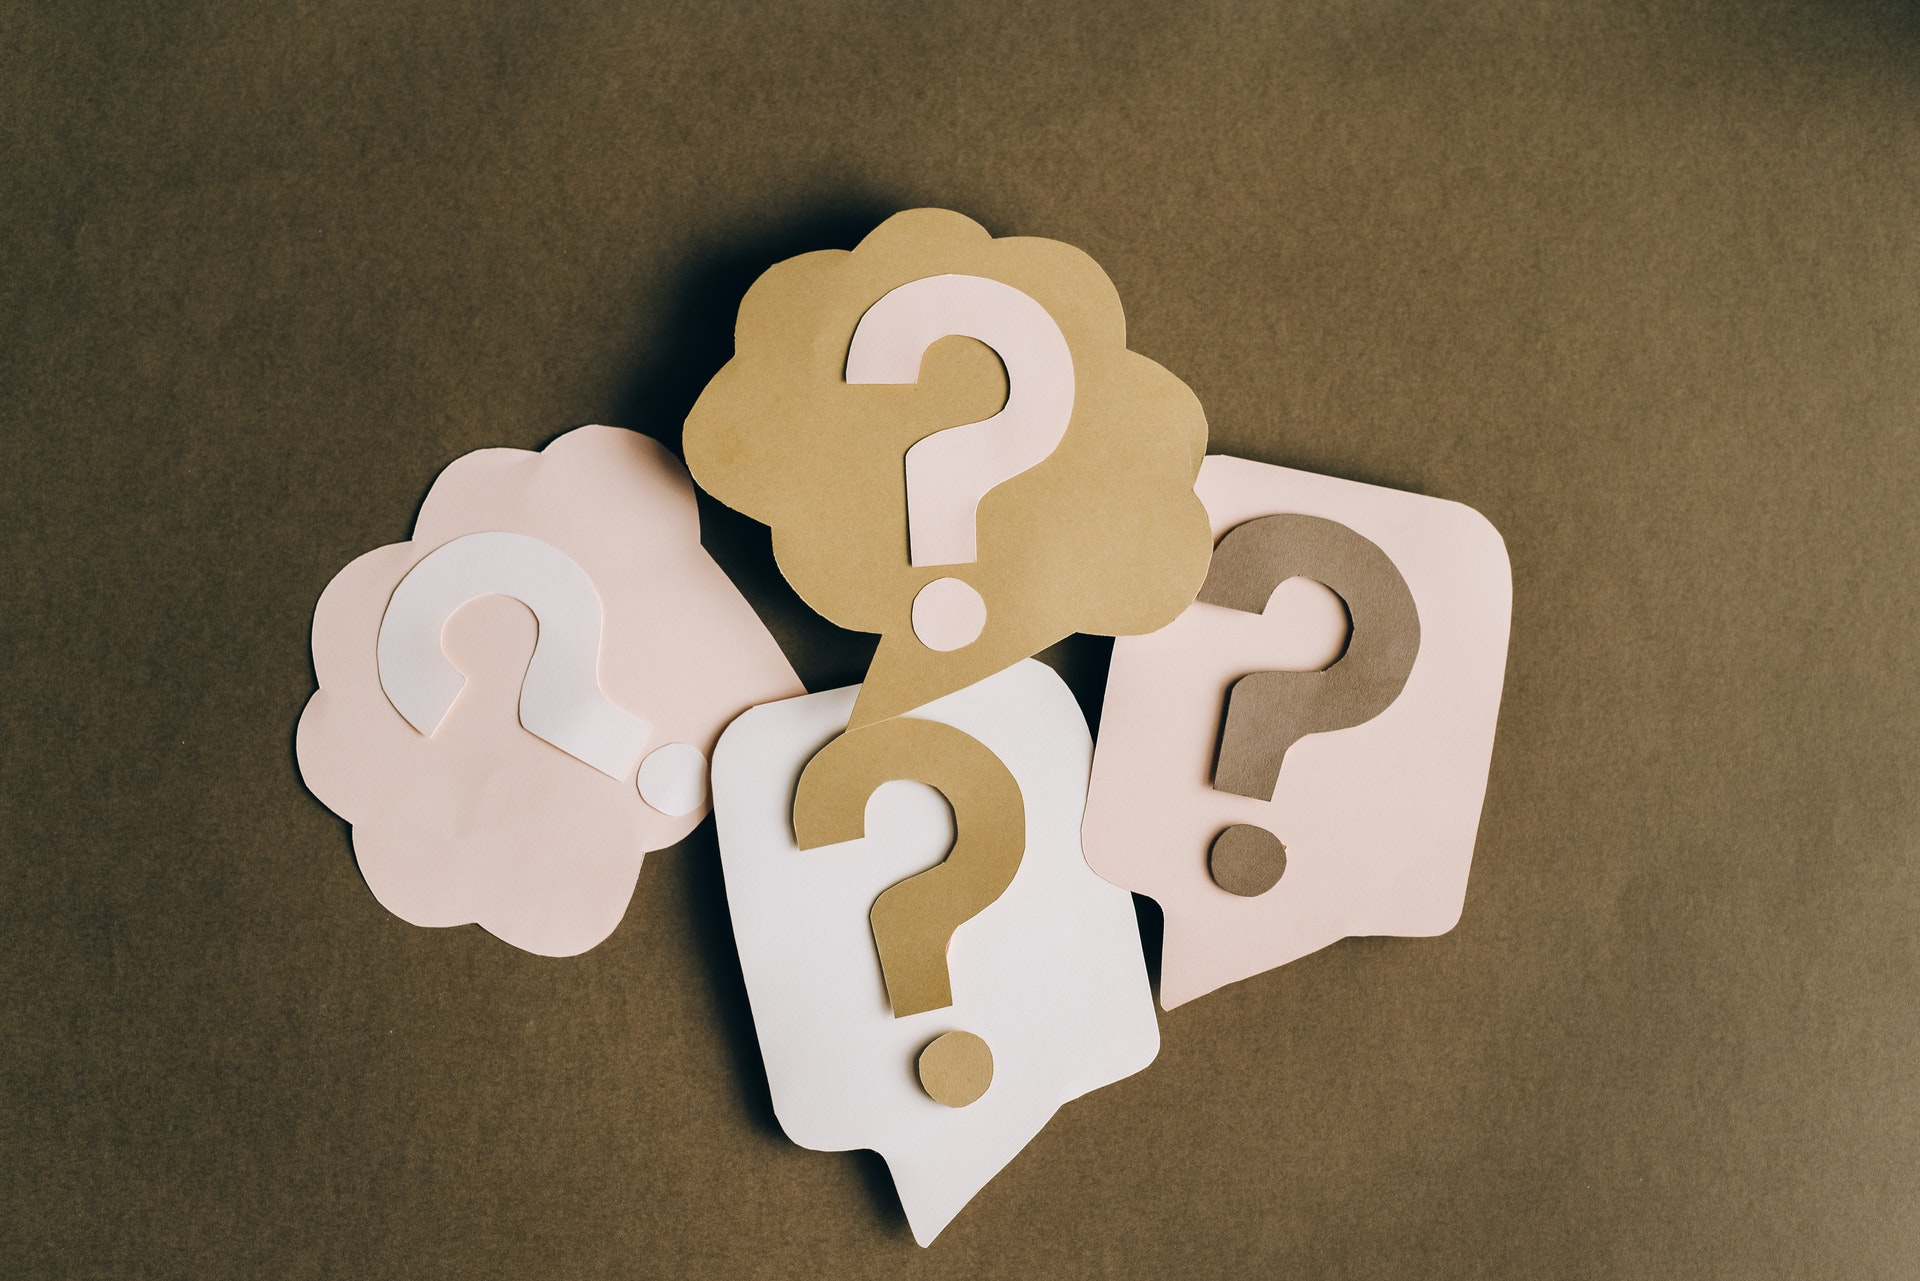 Out of ideas? These 20 coaching questions will help you get unstuck